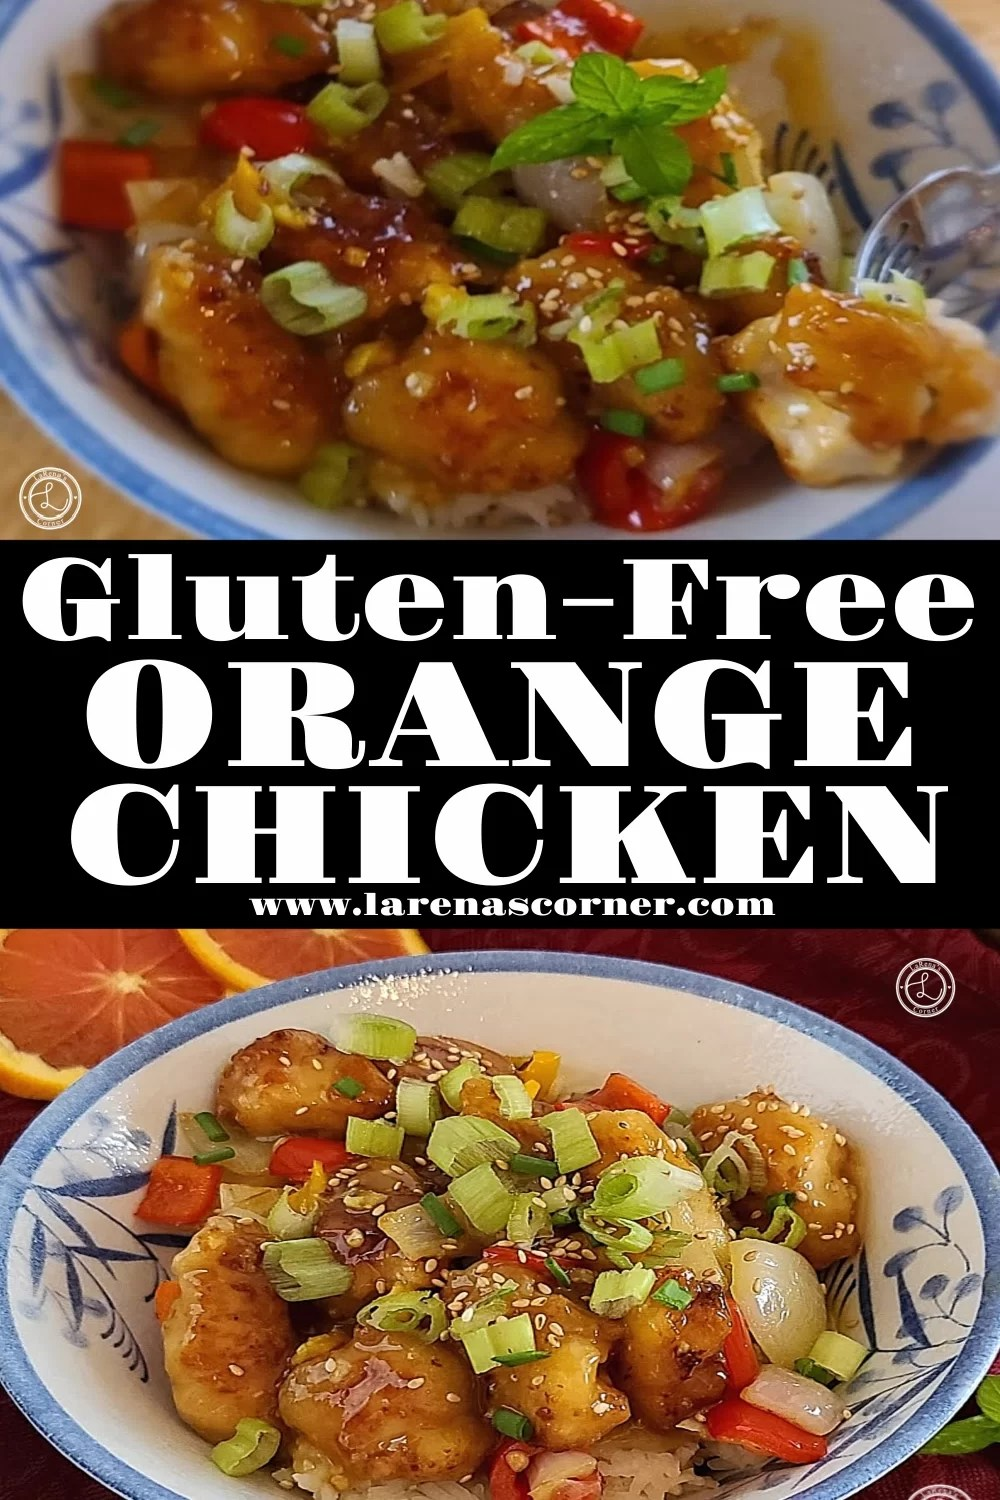 Two pictures of the gluten-free orange chicken